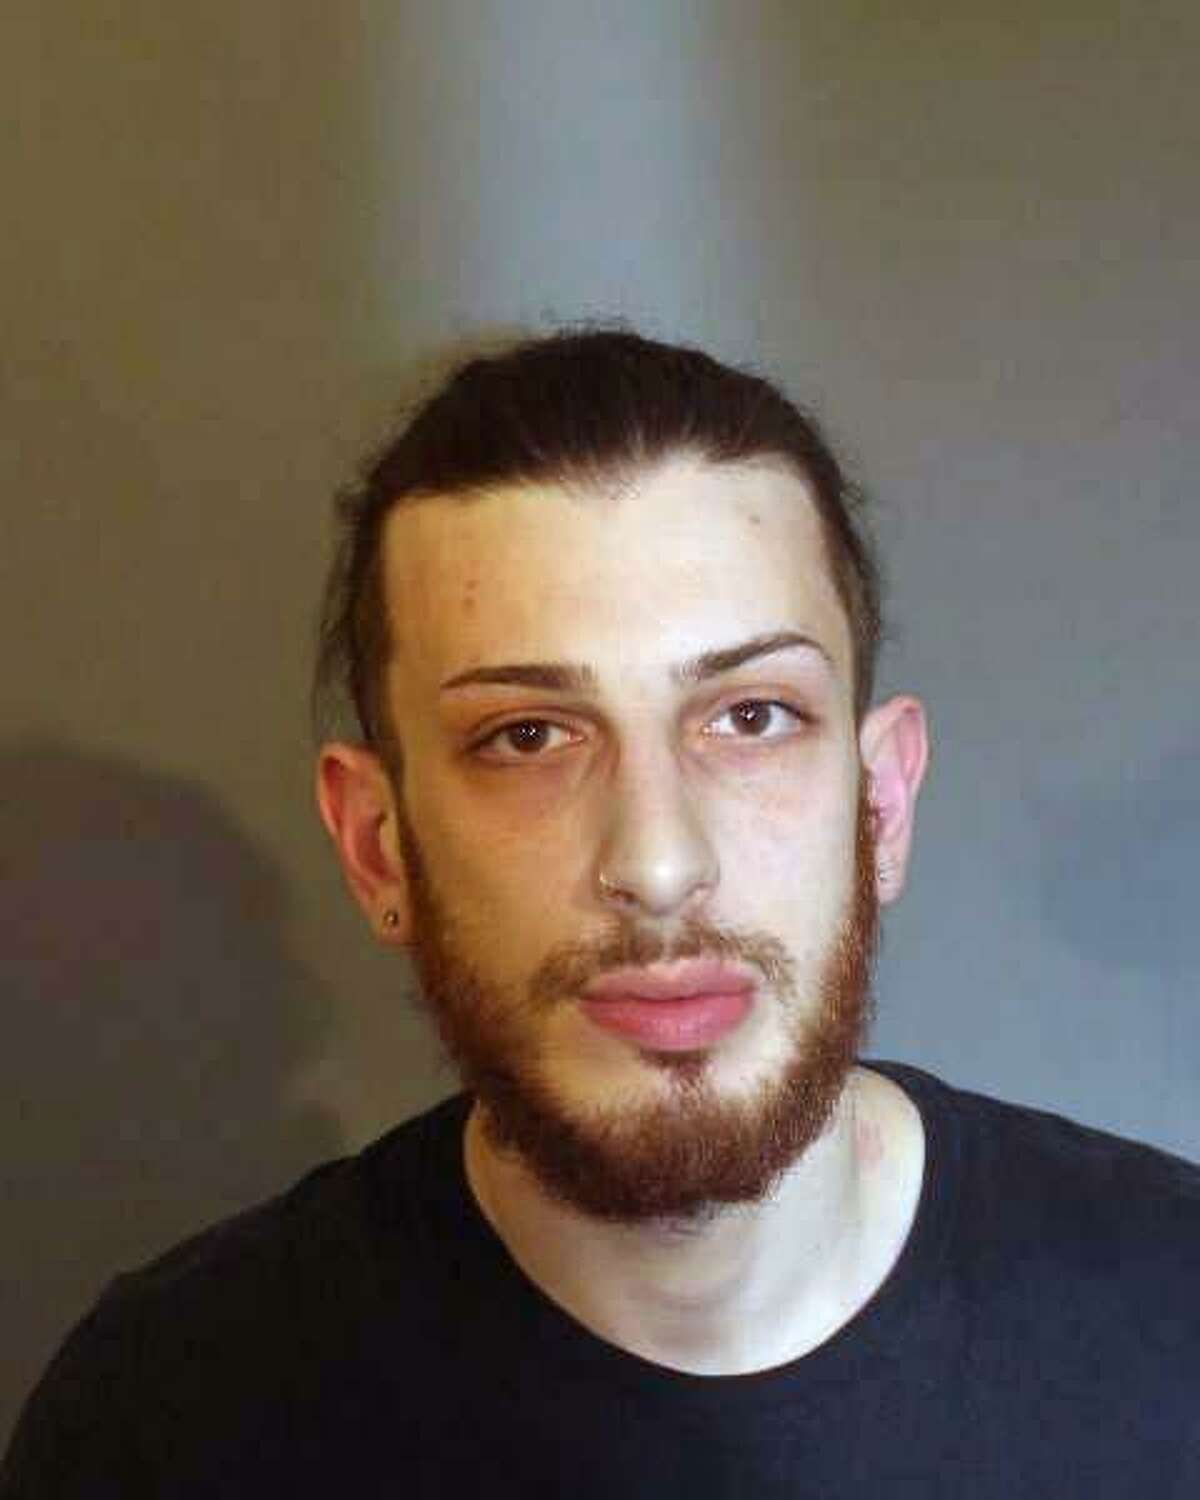 Robert Stevenson, 24, of Danbury, Conn., was charged with five counts of possession of a controlled substance, five counts of possession of a controlled substance with intent to sell, five counts of possession of a controlled substance within 1,500 feet of a school, five counts of possession of a controlled substance with intent to sell within 1,500 feet of a school, possession of drug paraphernalia and possession of drug paraphernalia within 1,500 feet of a school.